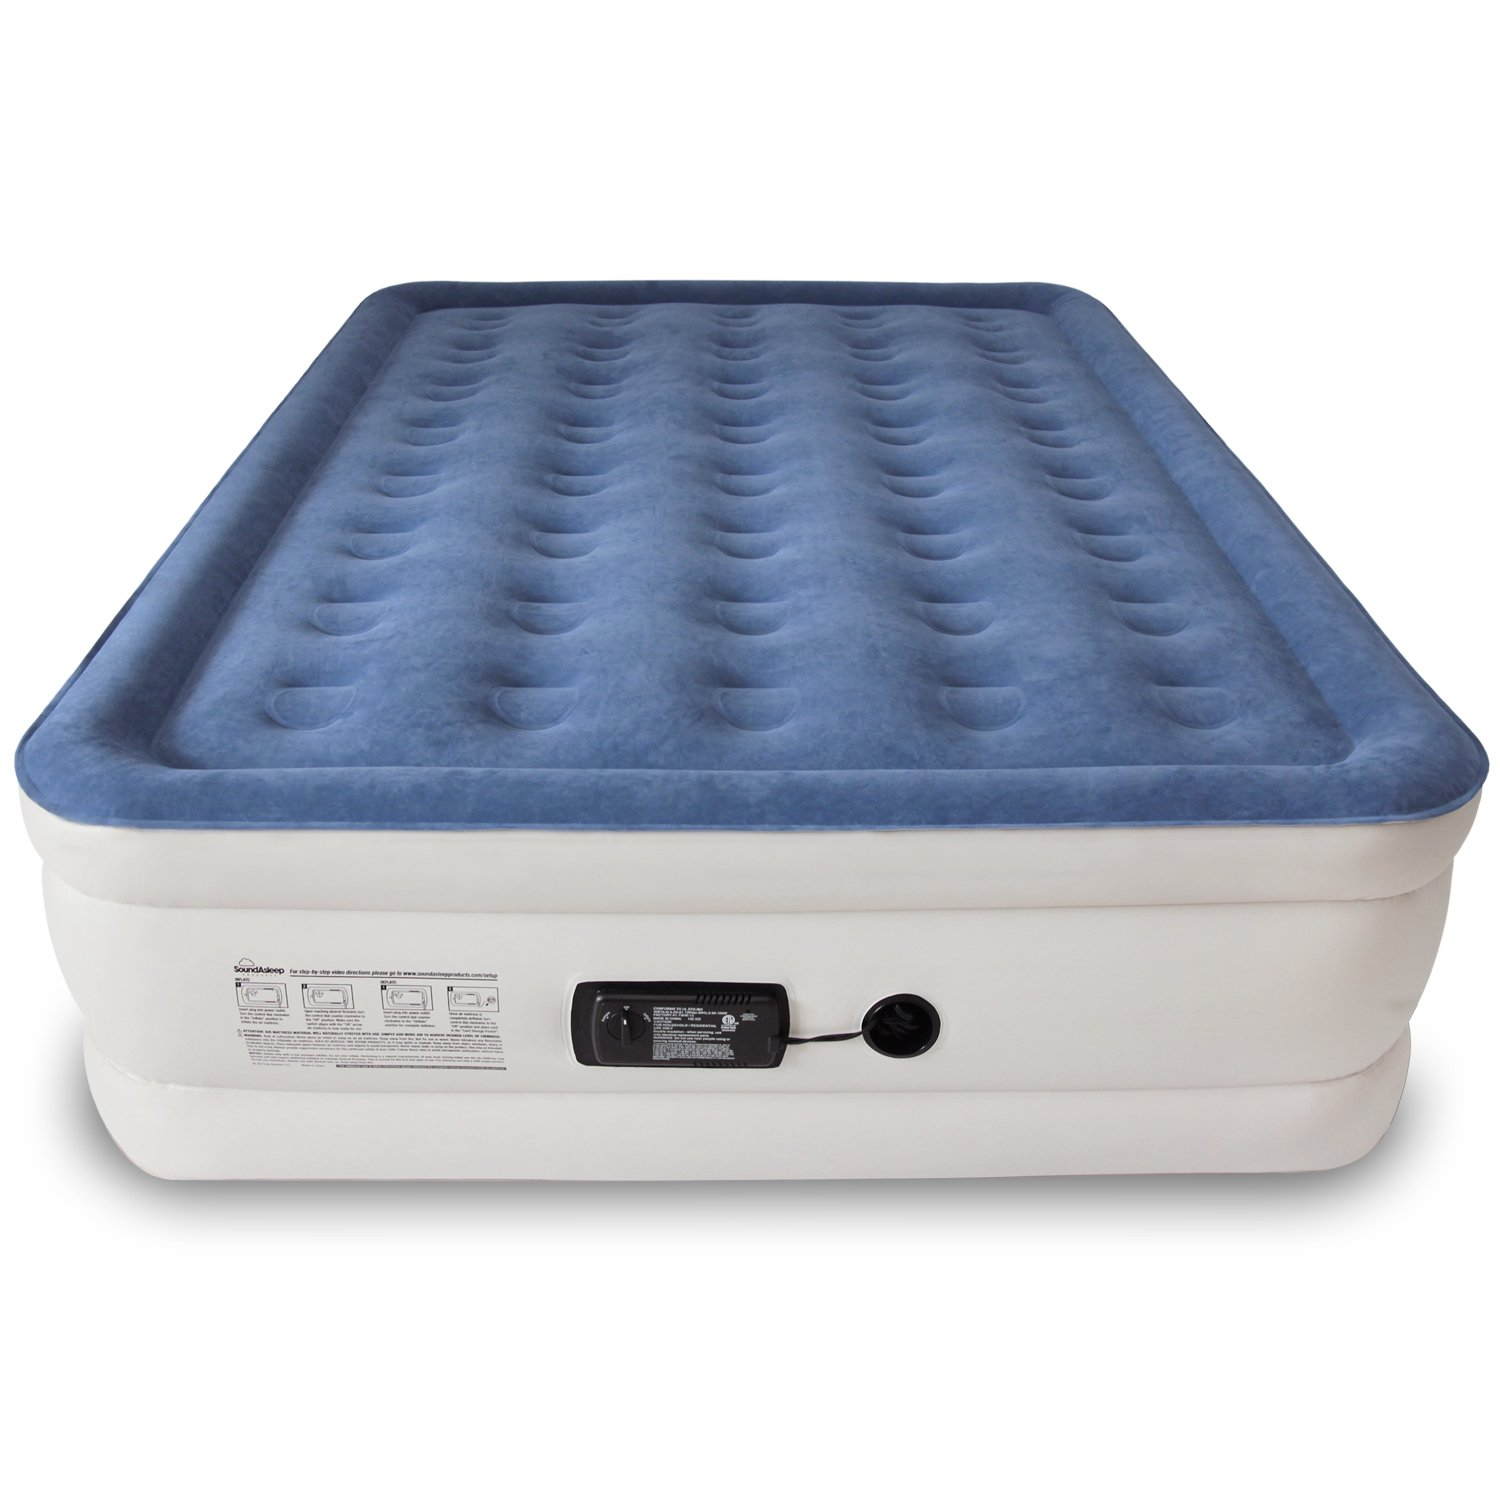 What Are The Best Camping Beds For Heavy People For Big